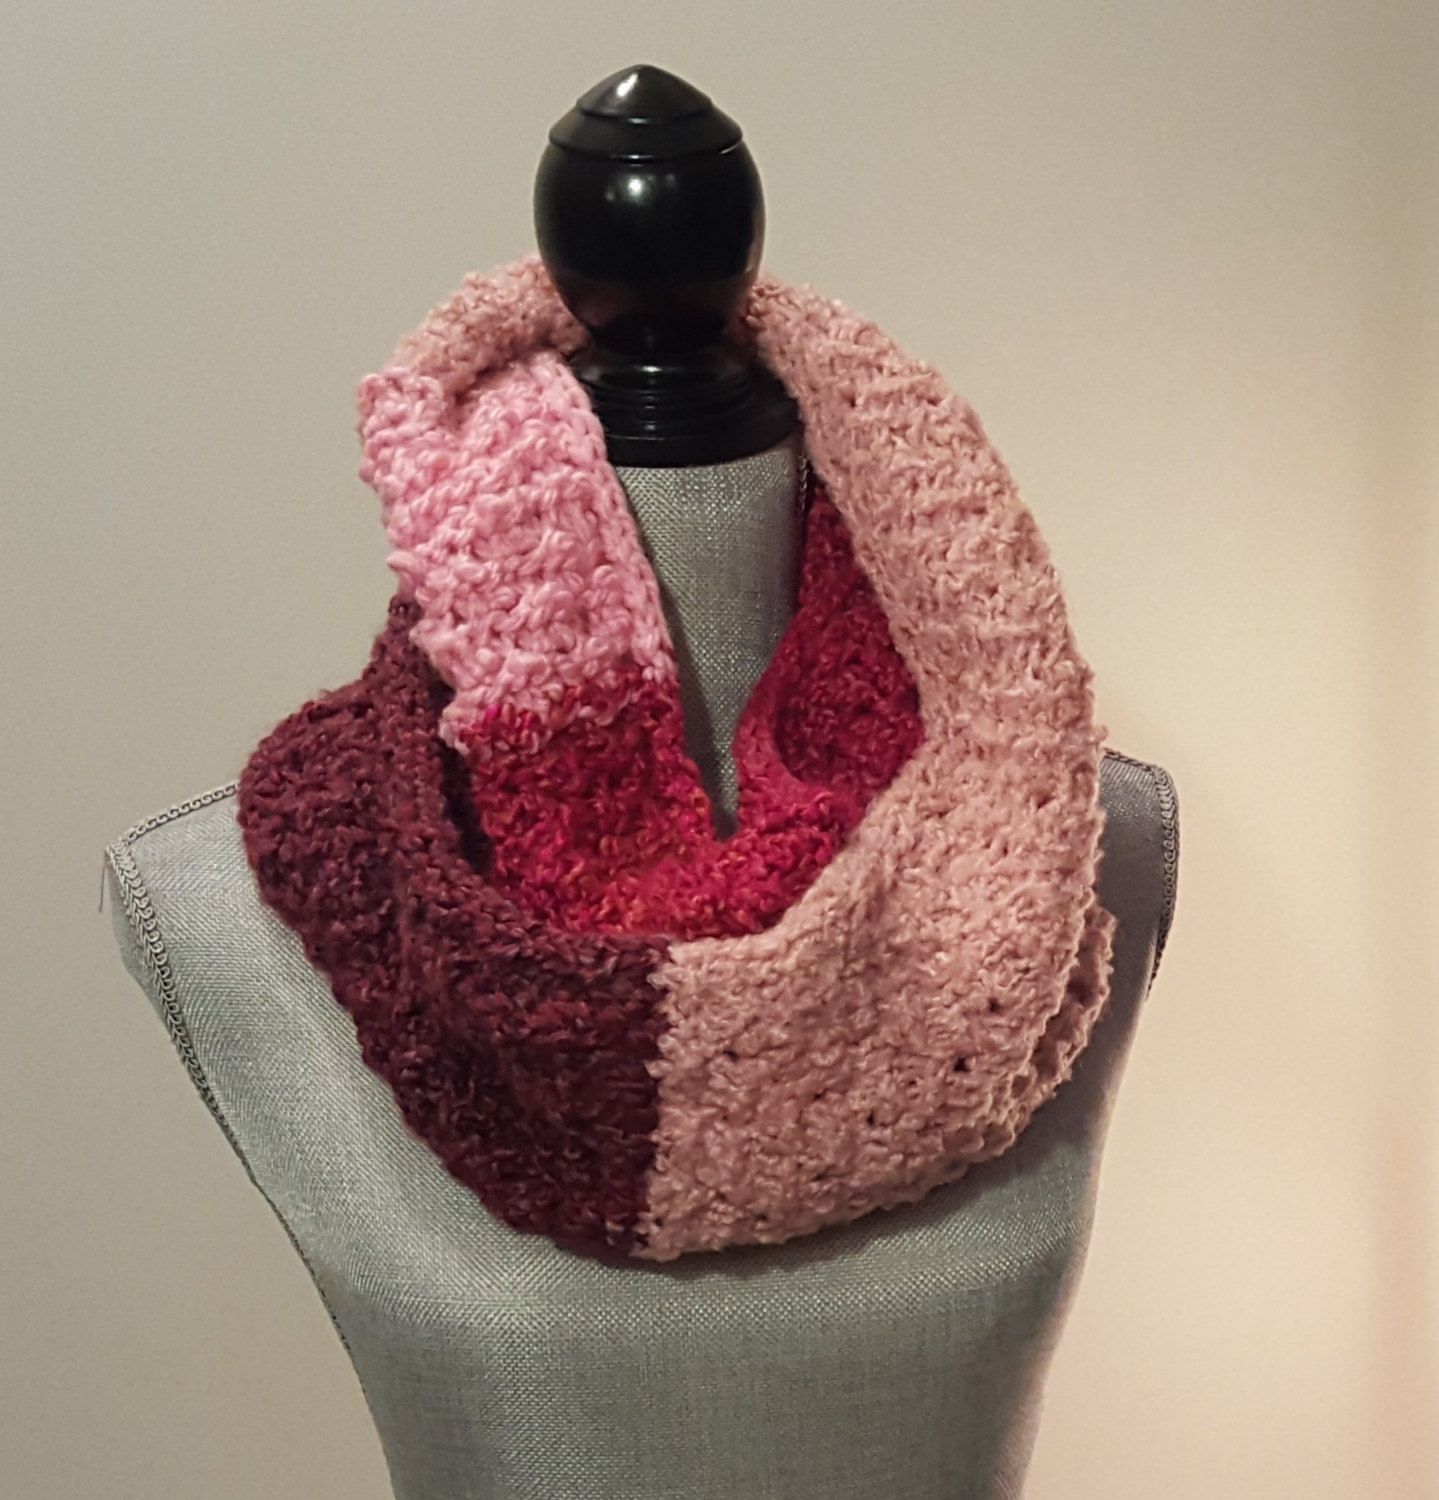 SPRING CLEANING SALE Chunky Knit, Textured Infinity Scarf - $46.75 CAD